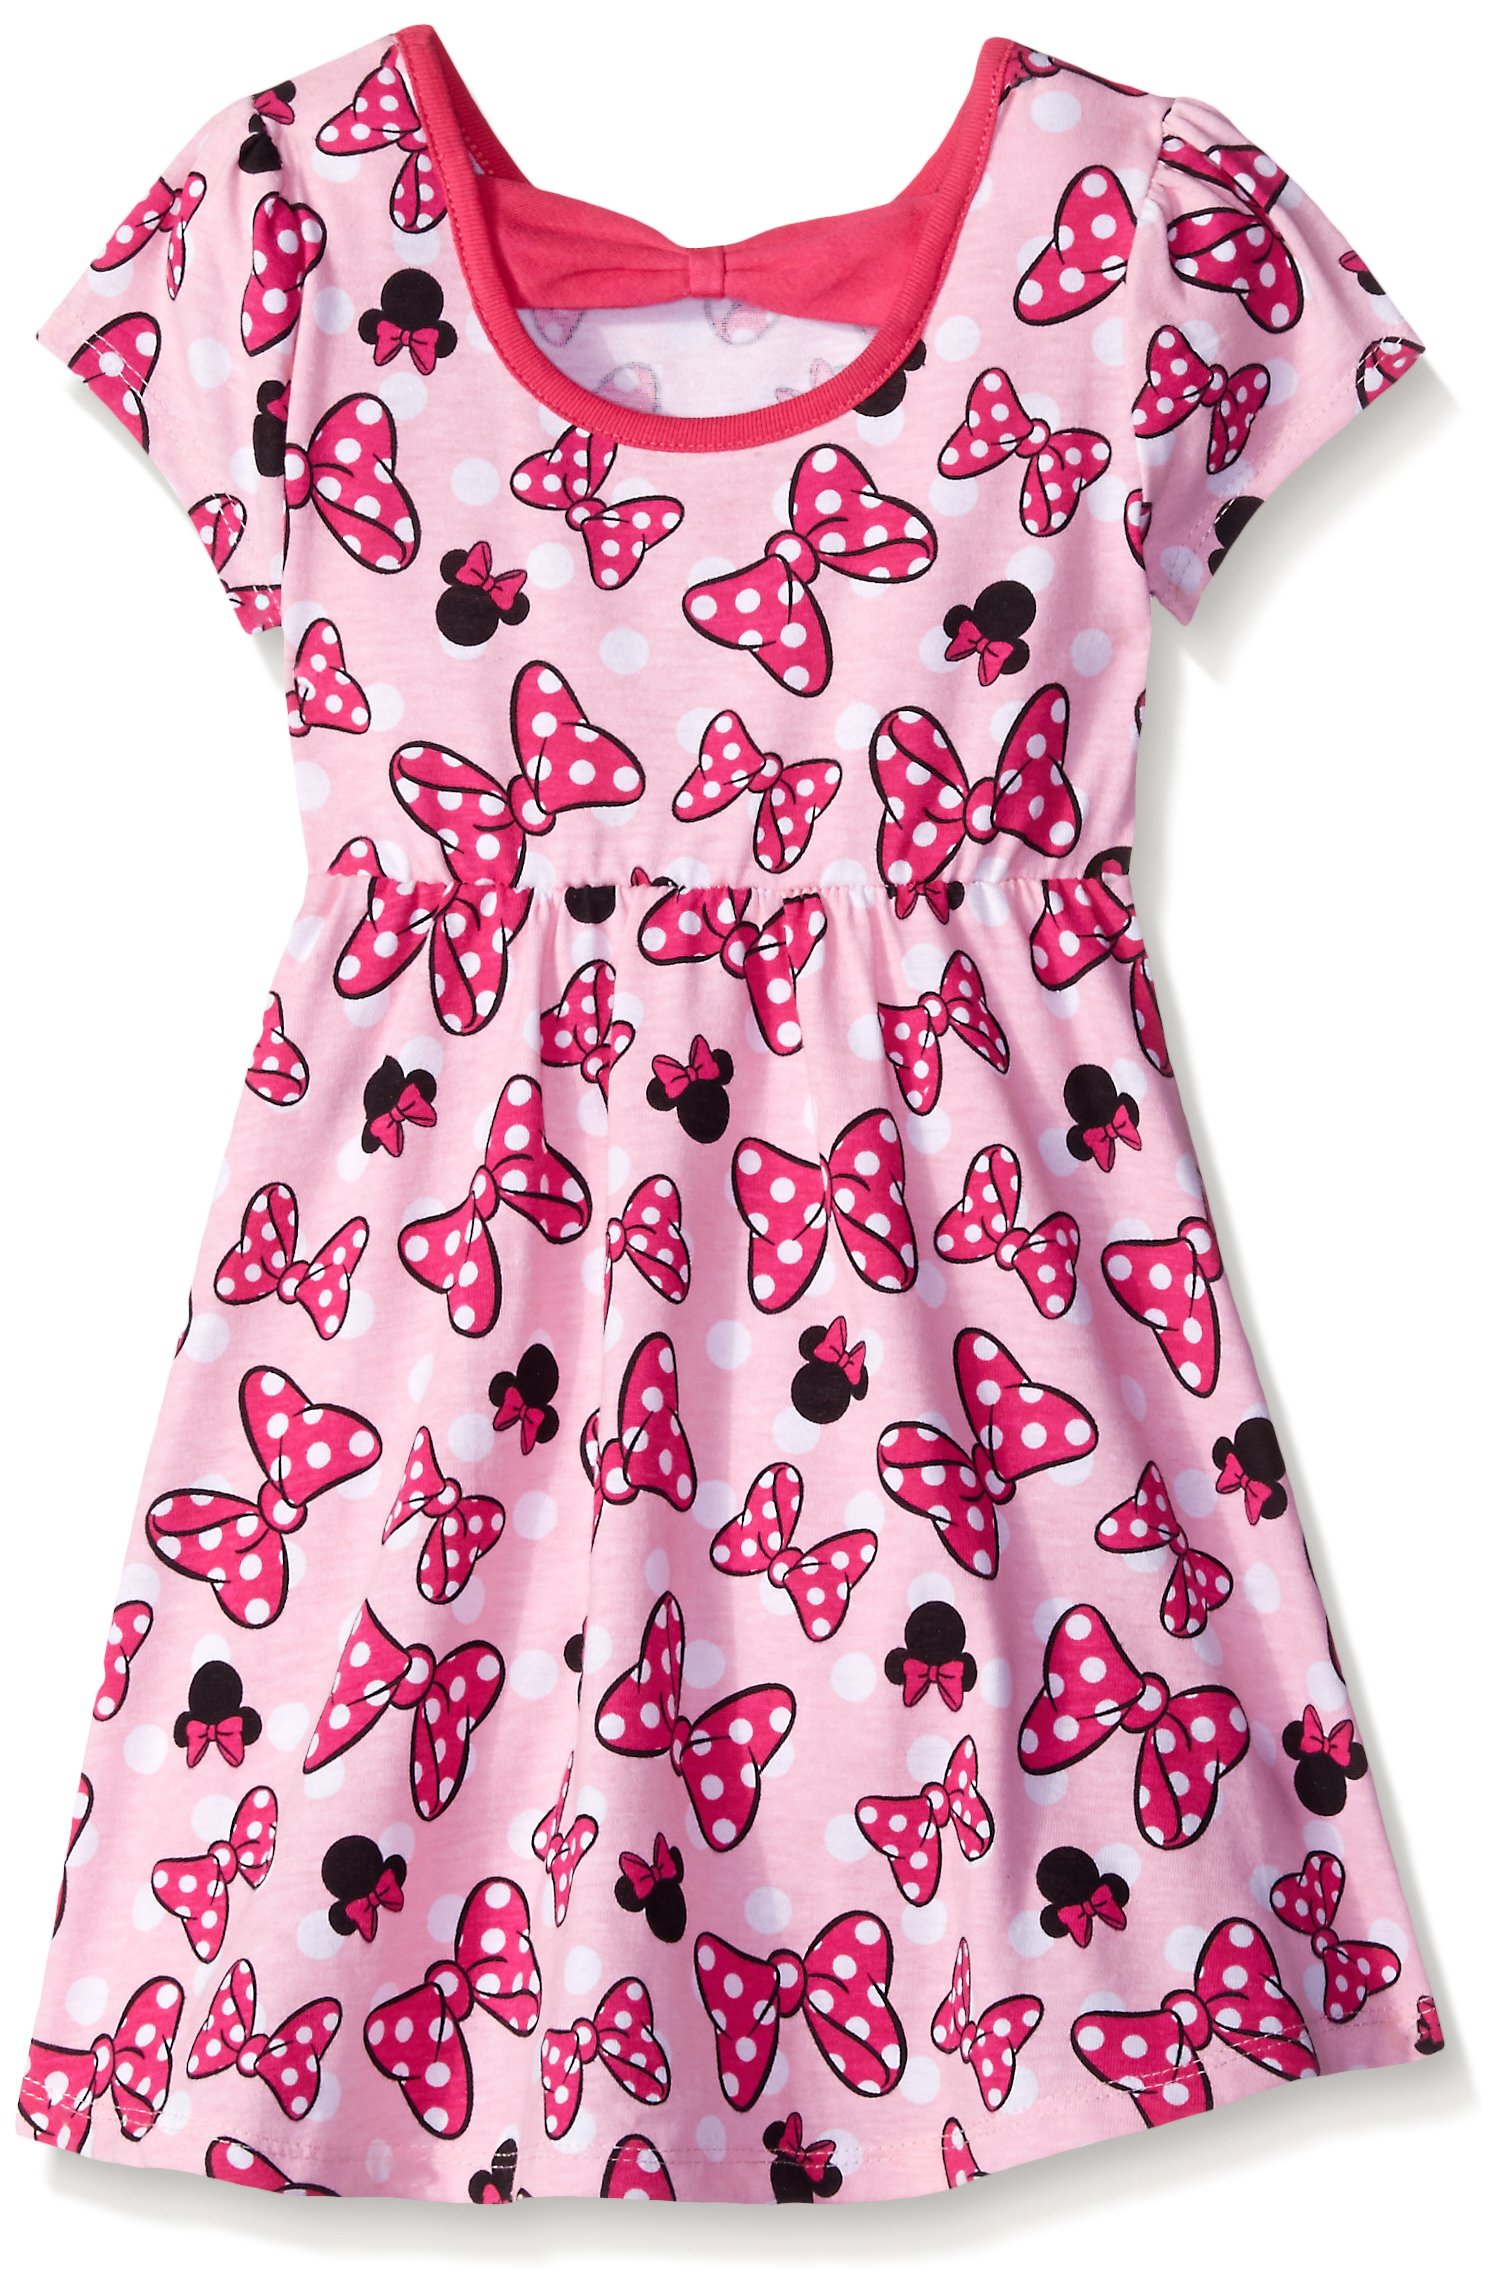 Disney Little Girls' 2 Pack Love Minnie Dresses, Pink, 5 by Disney (Image #2)